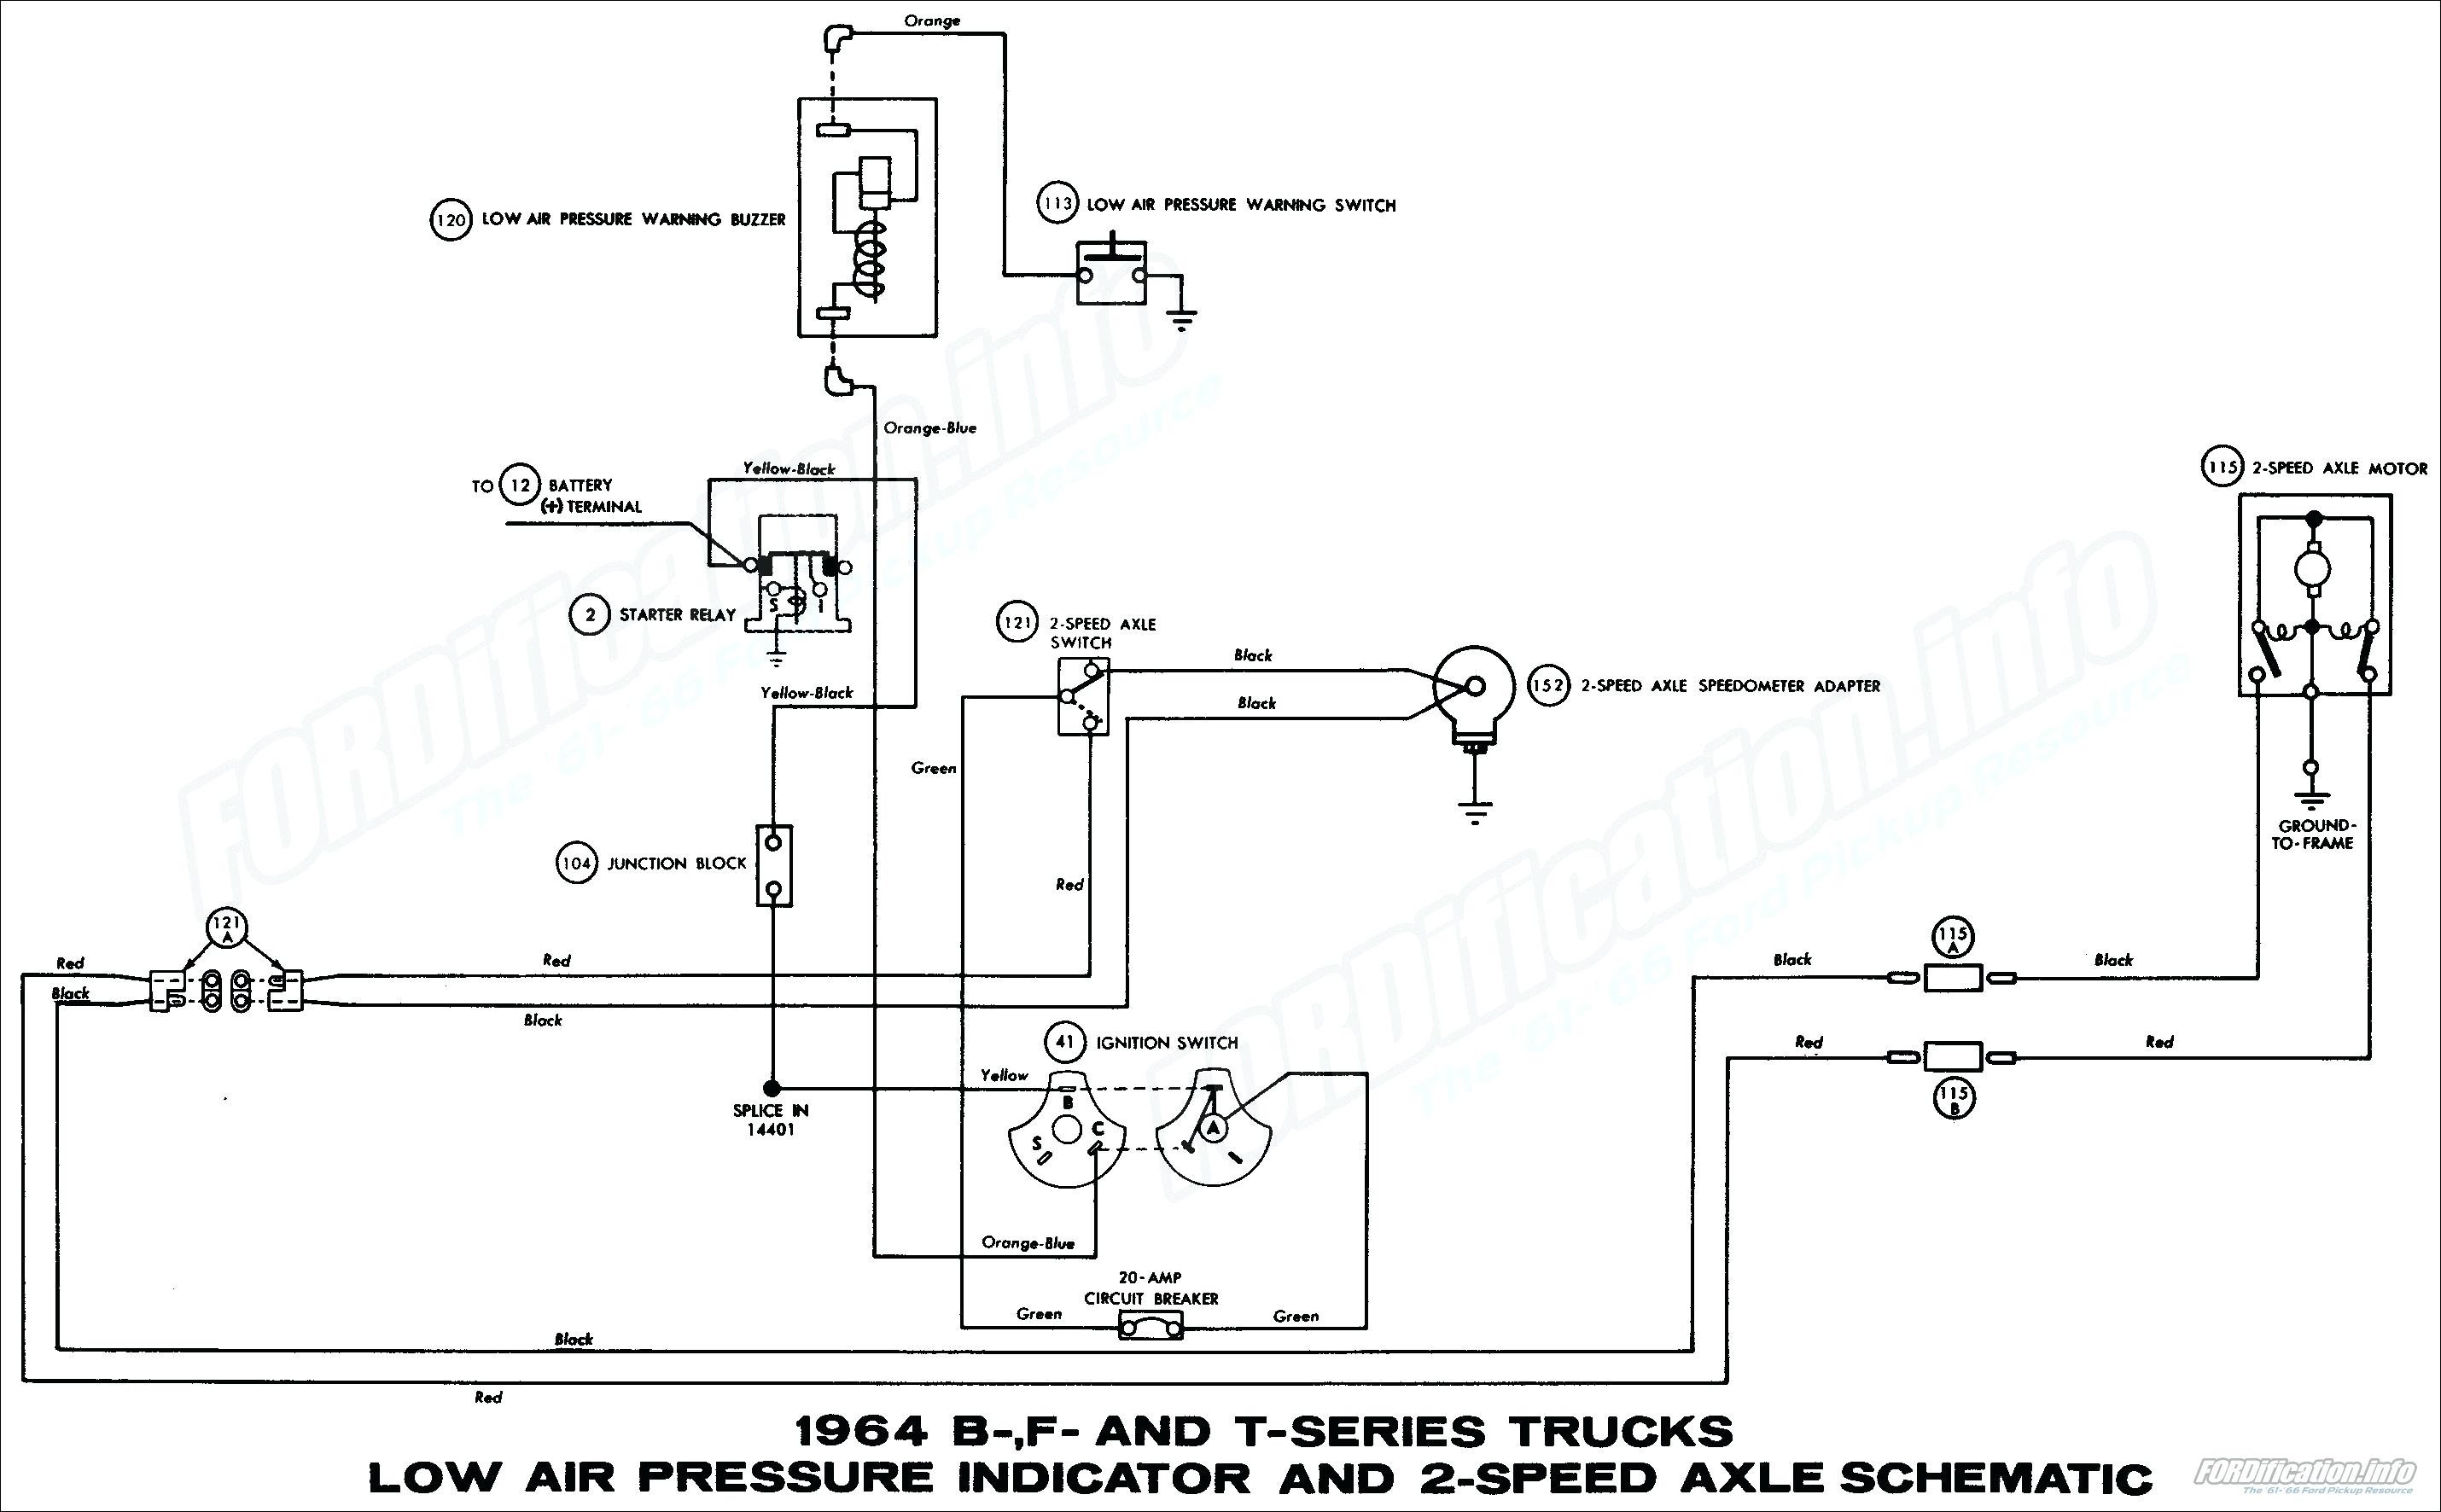 Ford 8N 6 Volt Wiring Diagram | Manual E-Books - 8N Ford Tractor Wiring Diagram